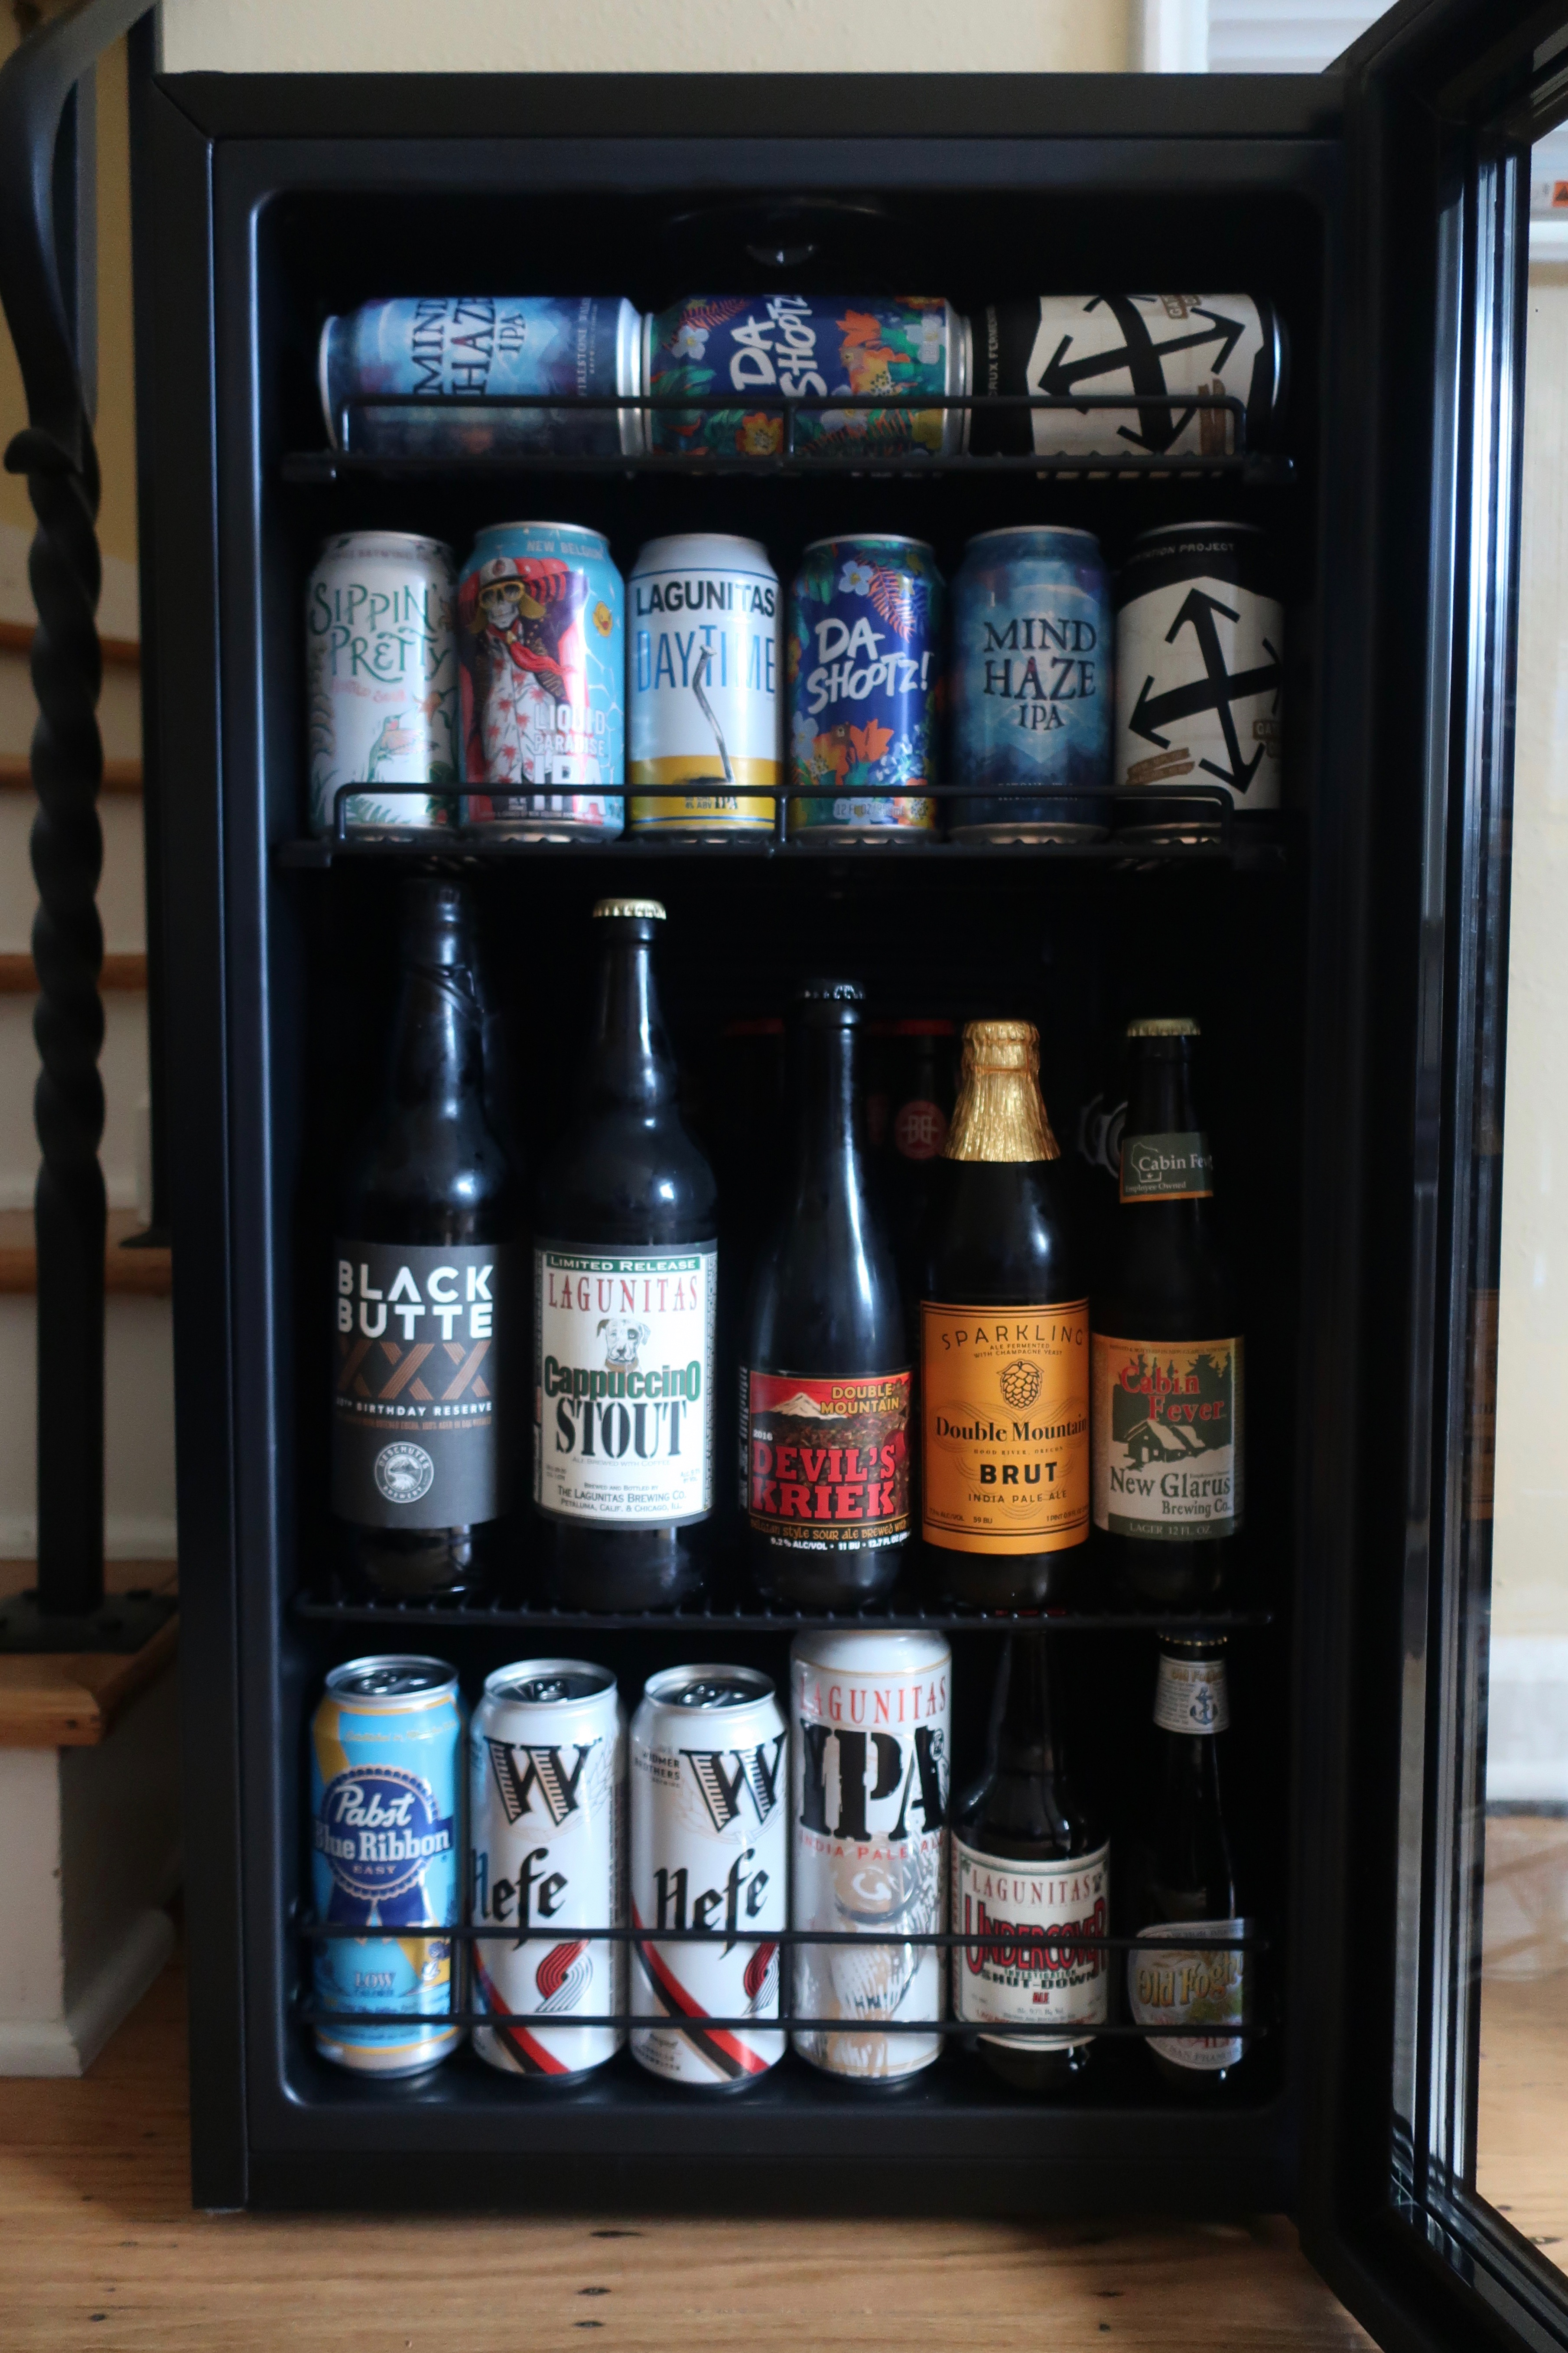 The NewAir Beers of the World Custom Beer Fridge holds all different sizes of beer cans and bottles.